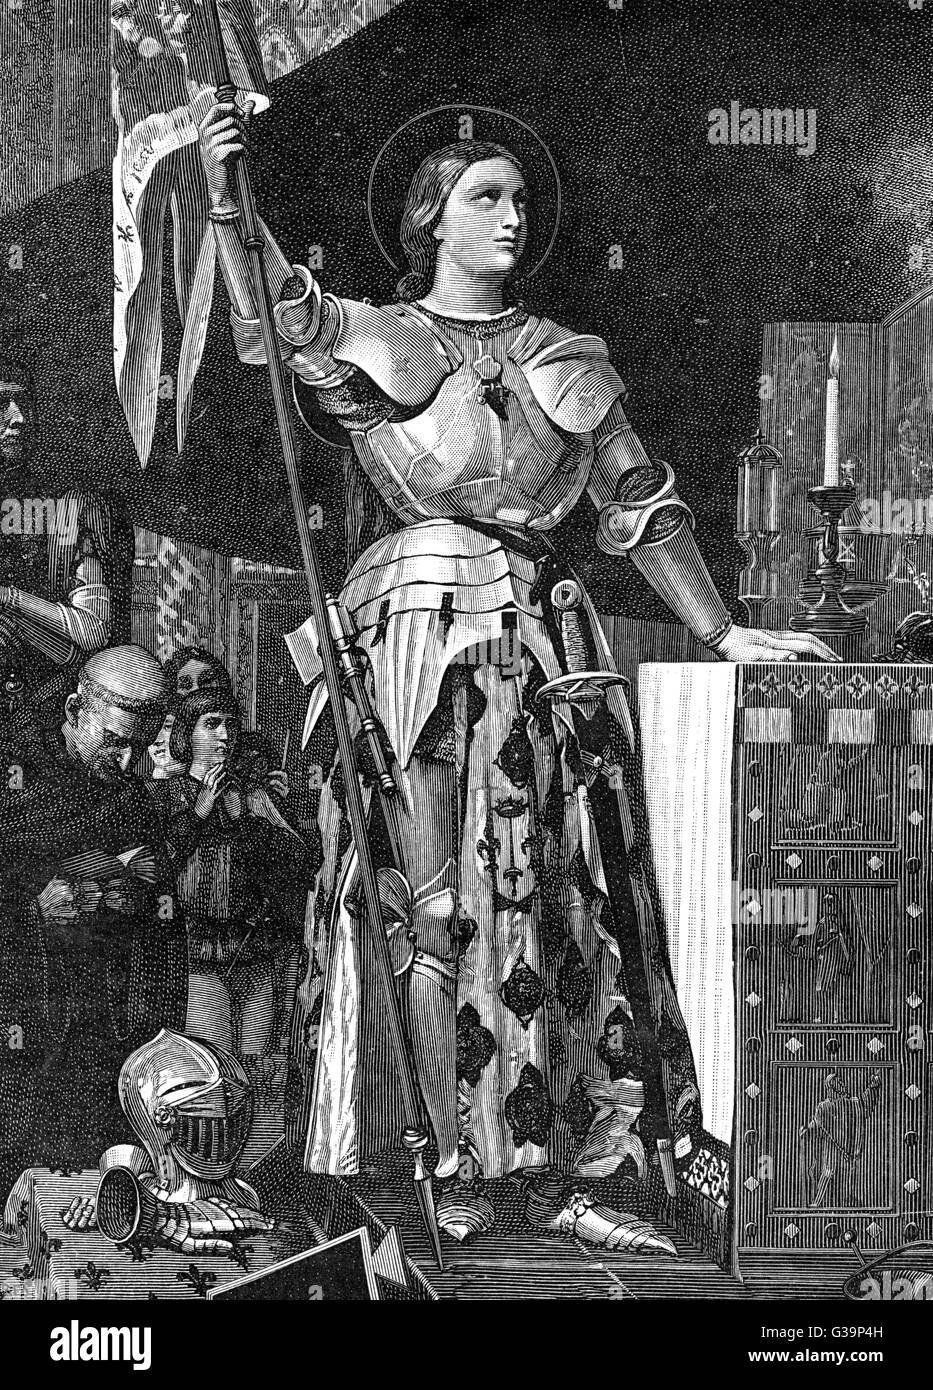 JOAN OF ARC  French heroine in armour  and halo, at the altar  of a church      Date: 1412? - 1431 - Stock Image